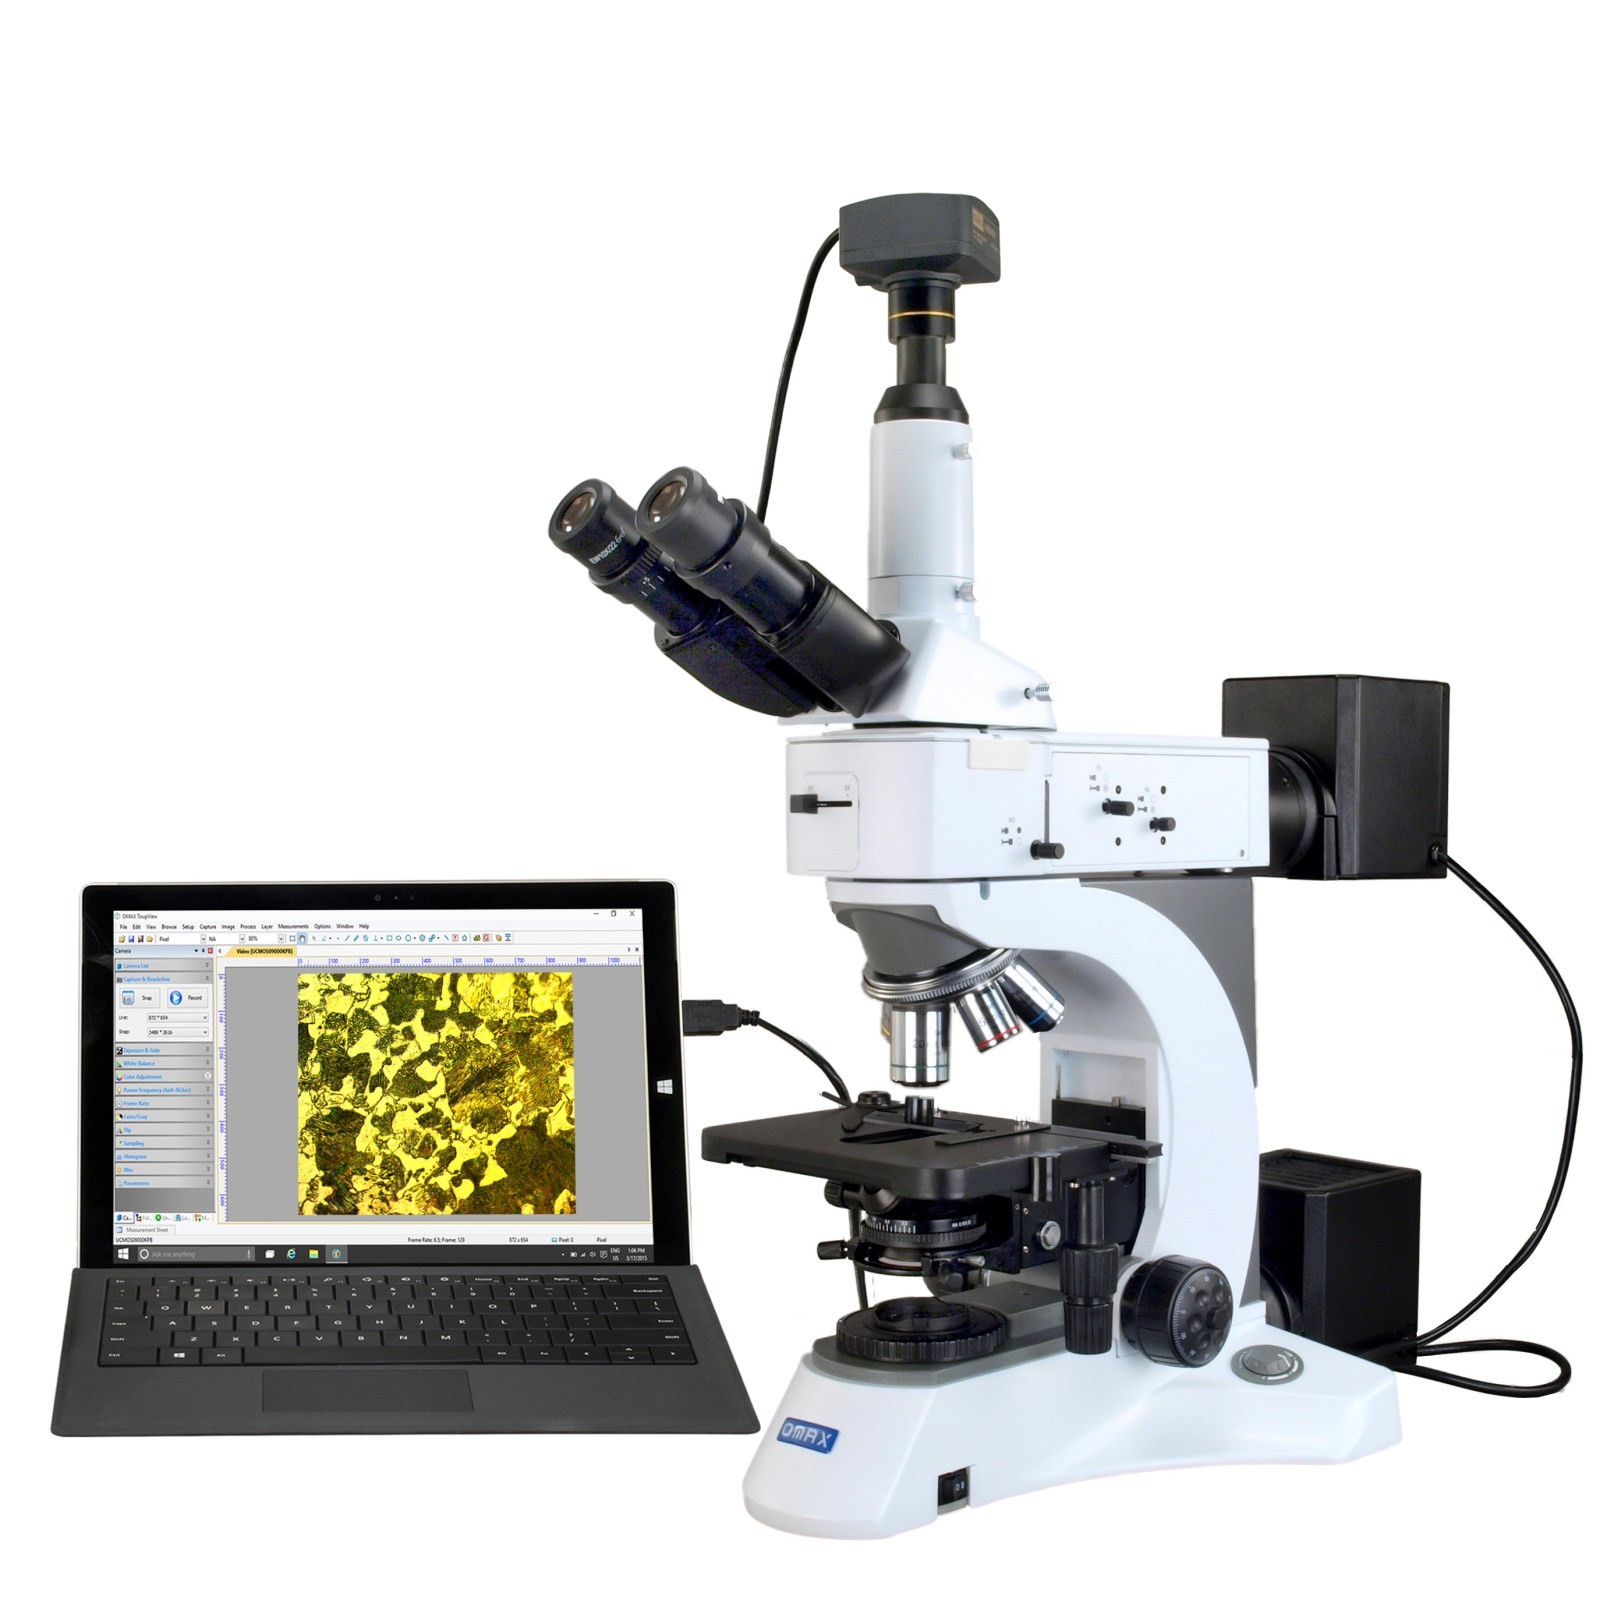 OMAX 40X-1500X USB3 10MP Digital Trinocular Metallurgical Infinity Polarizing Darkfield Microscope